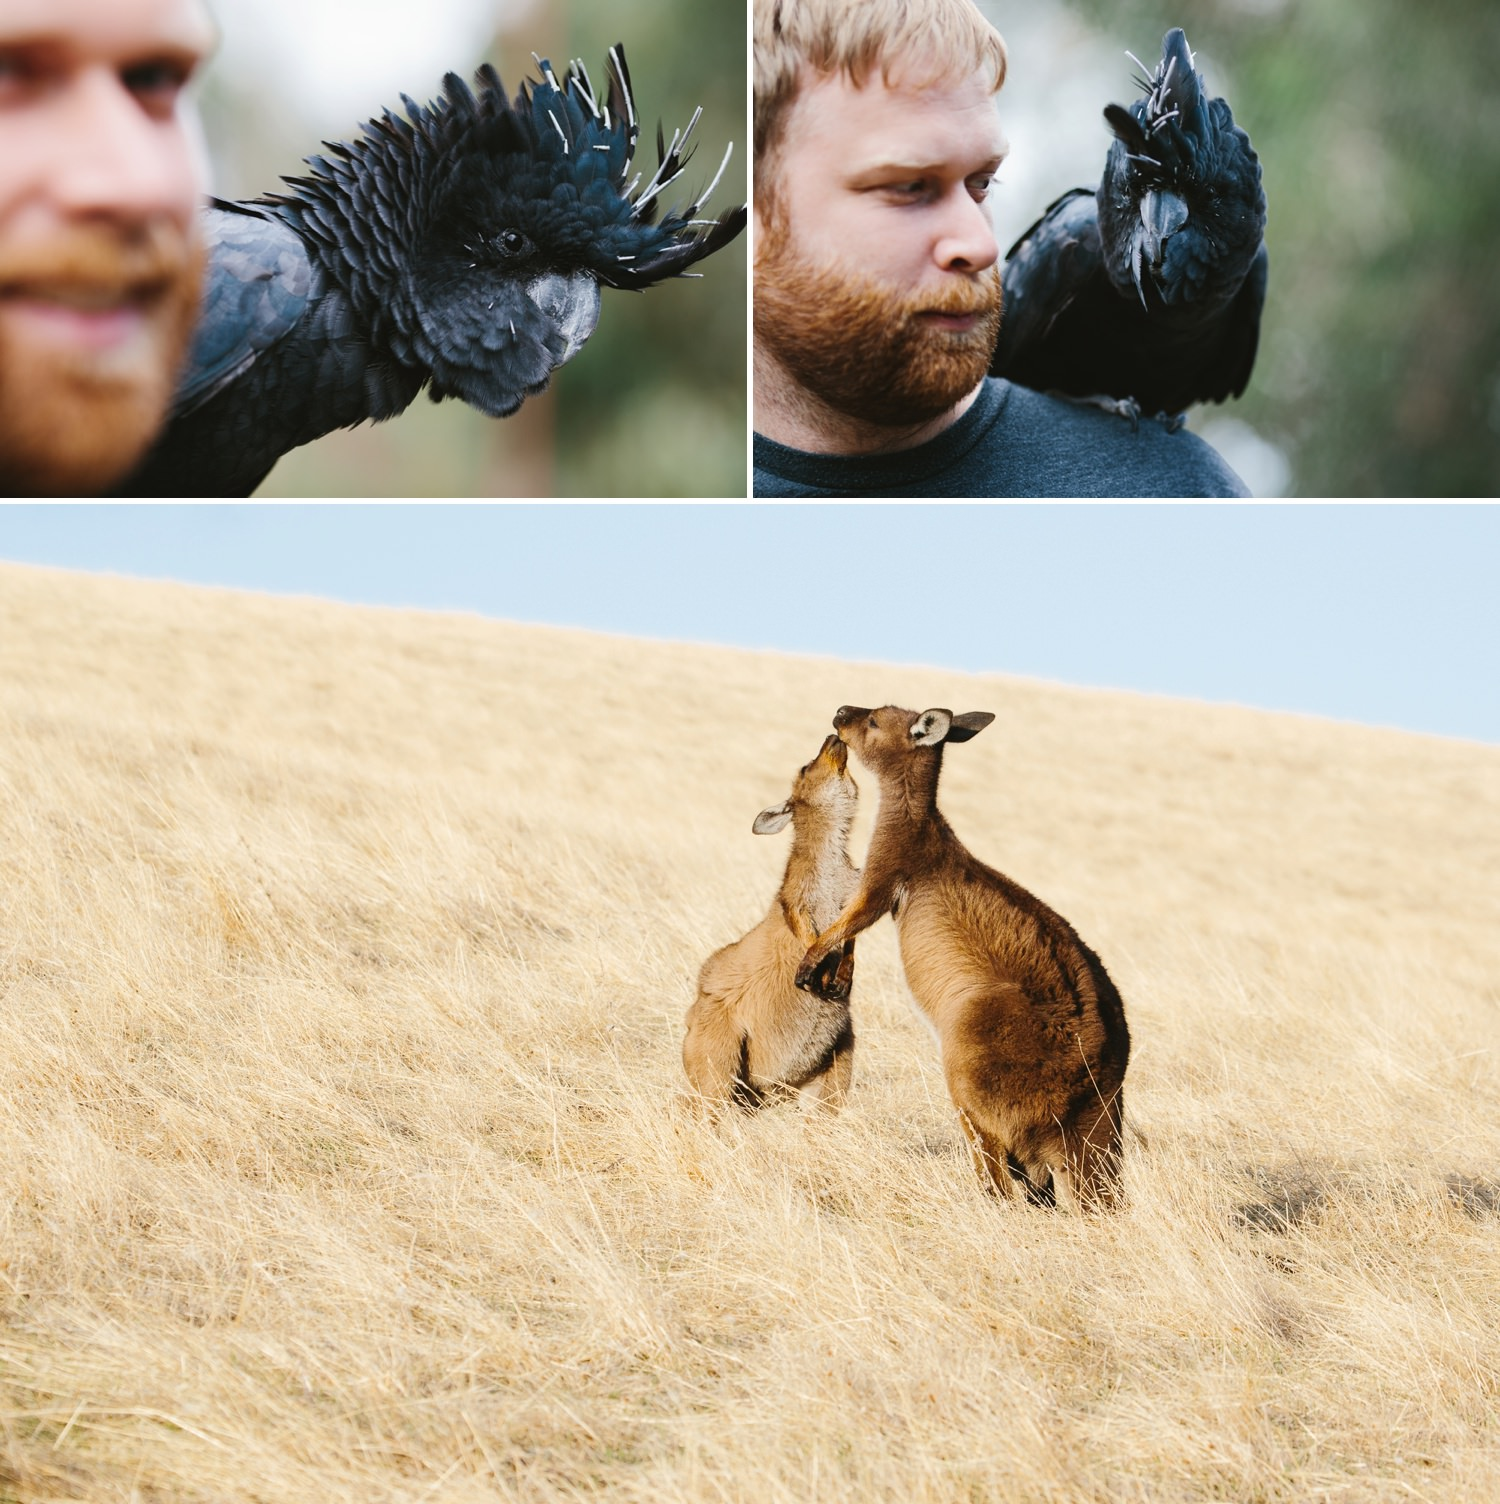 cameron-zegers-seattle-photographer-kangaroo-island-australia-travel_0021.jpg